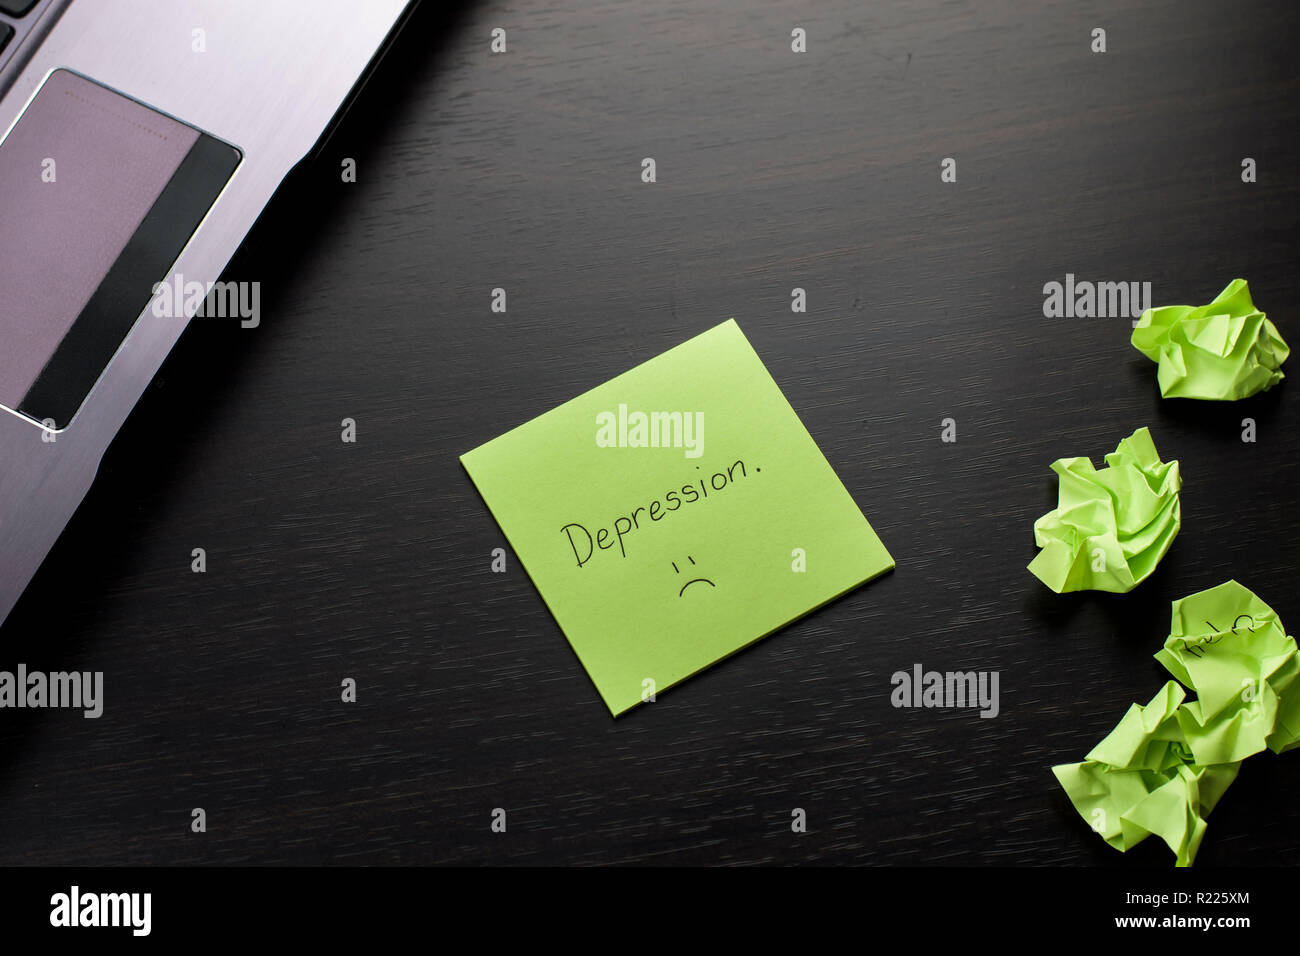 'Depression' is written on a green sticky note on wooden black table. Crumpled green sticky notes are scattered and a laptop computer on the side. - Stock Image